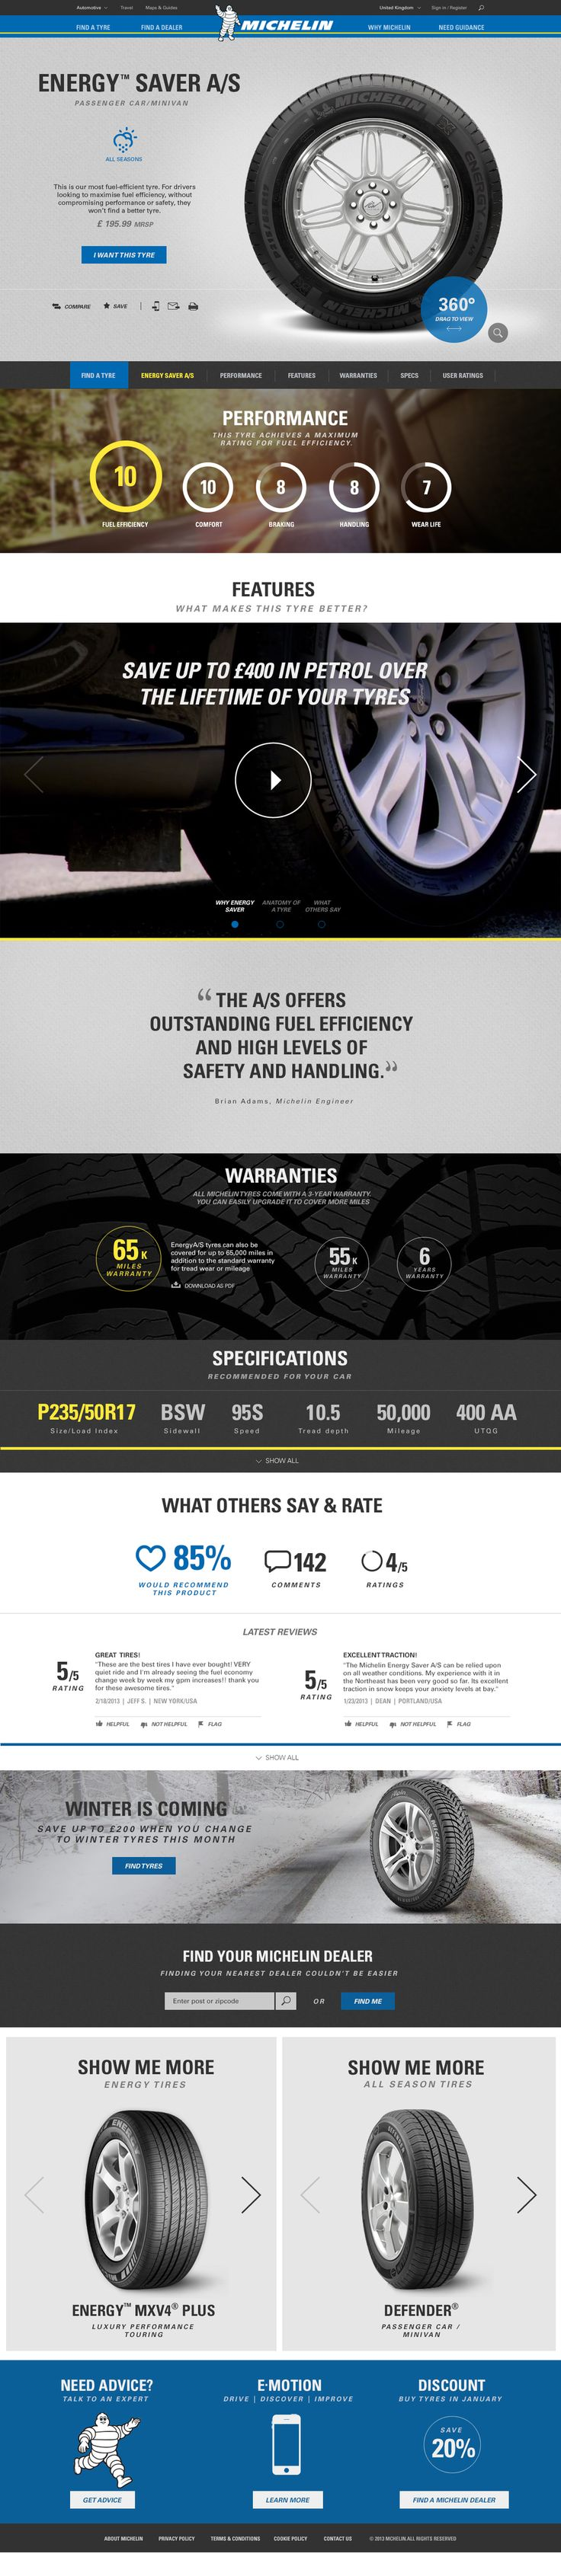 Michelin Tyres Redesign - Tyre Detail Page